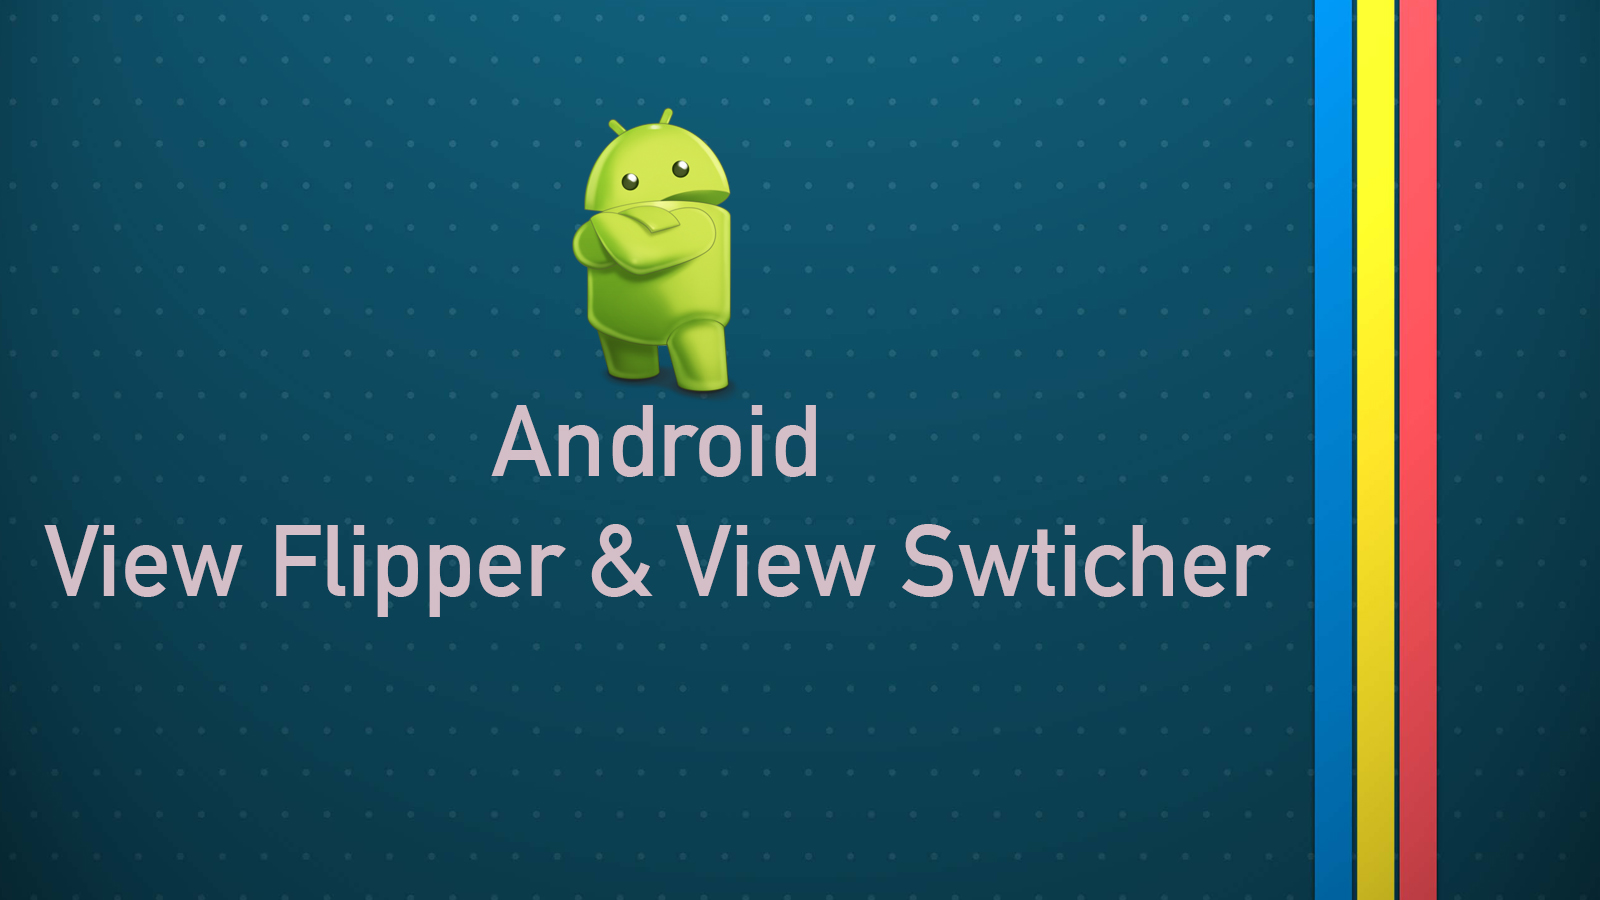 android_veiwflipper_viewSwticher